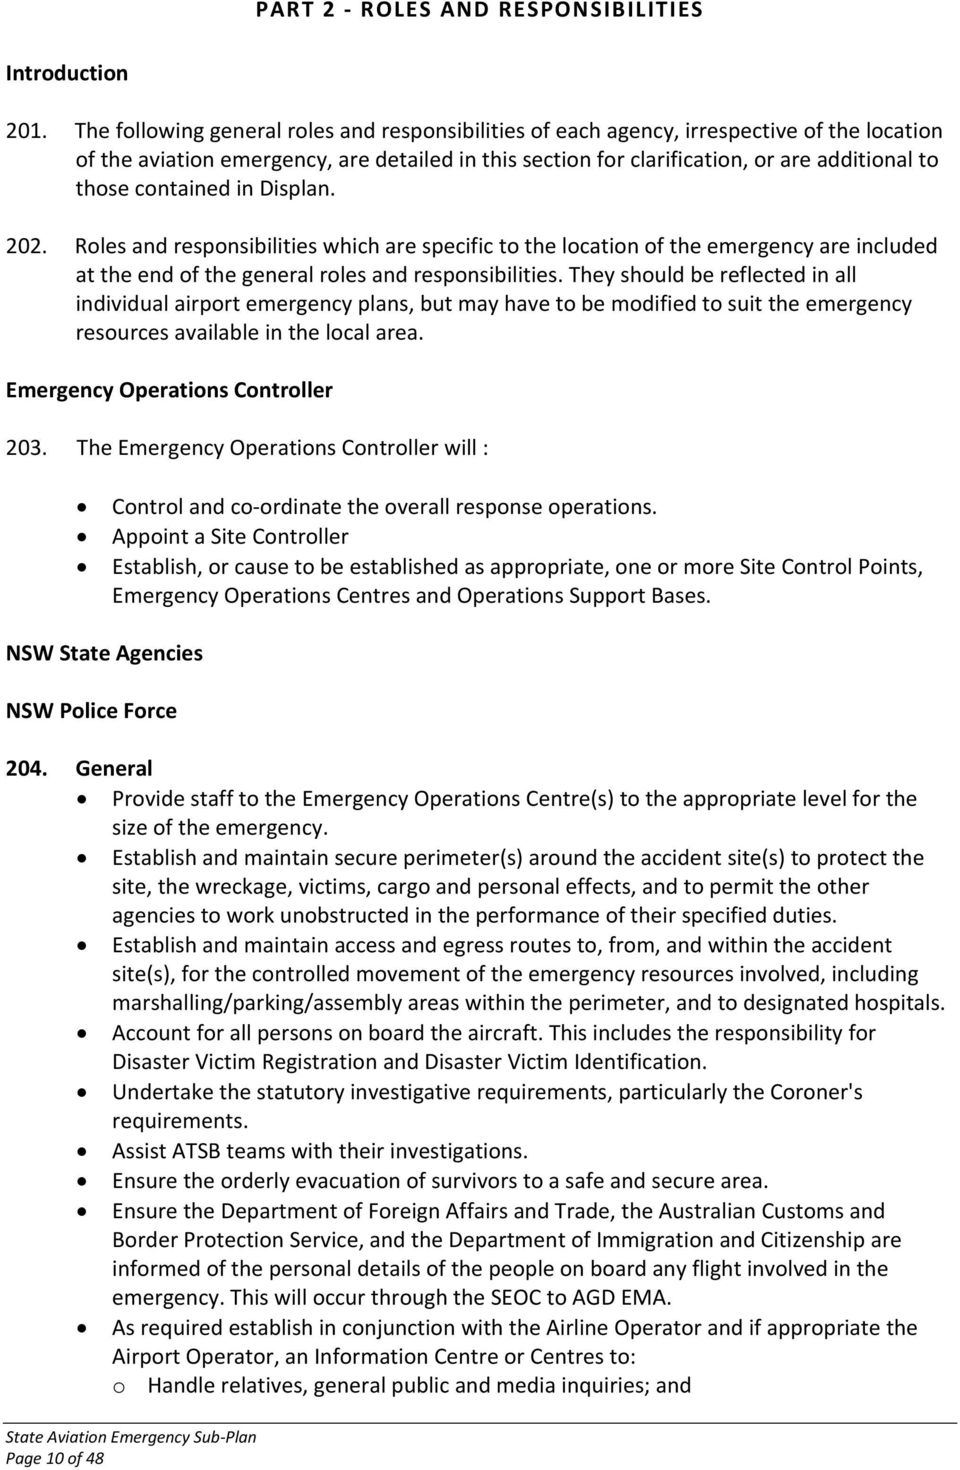 contained in Displan. 202. Roles and responsibilities which are specific to the location of the emergency are included at the end of the general roles and responsibilities.